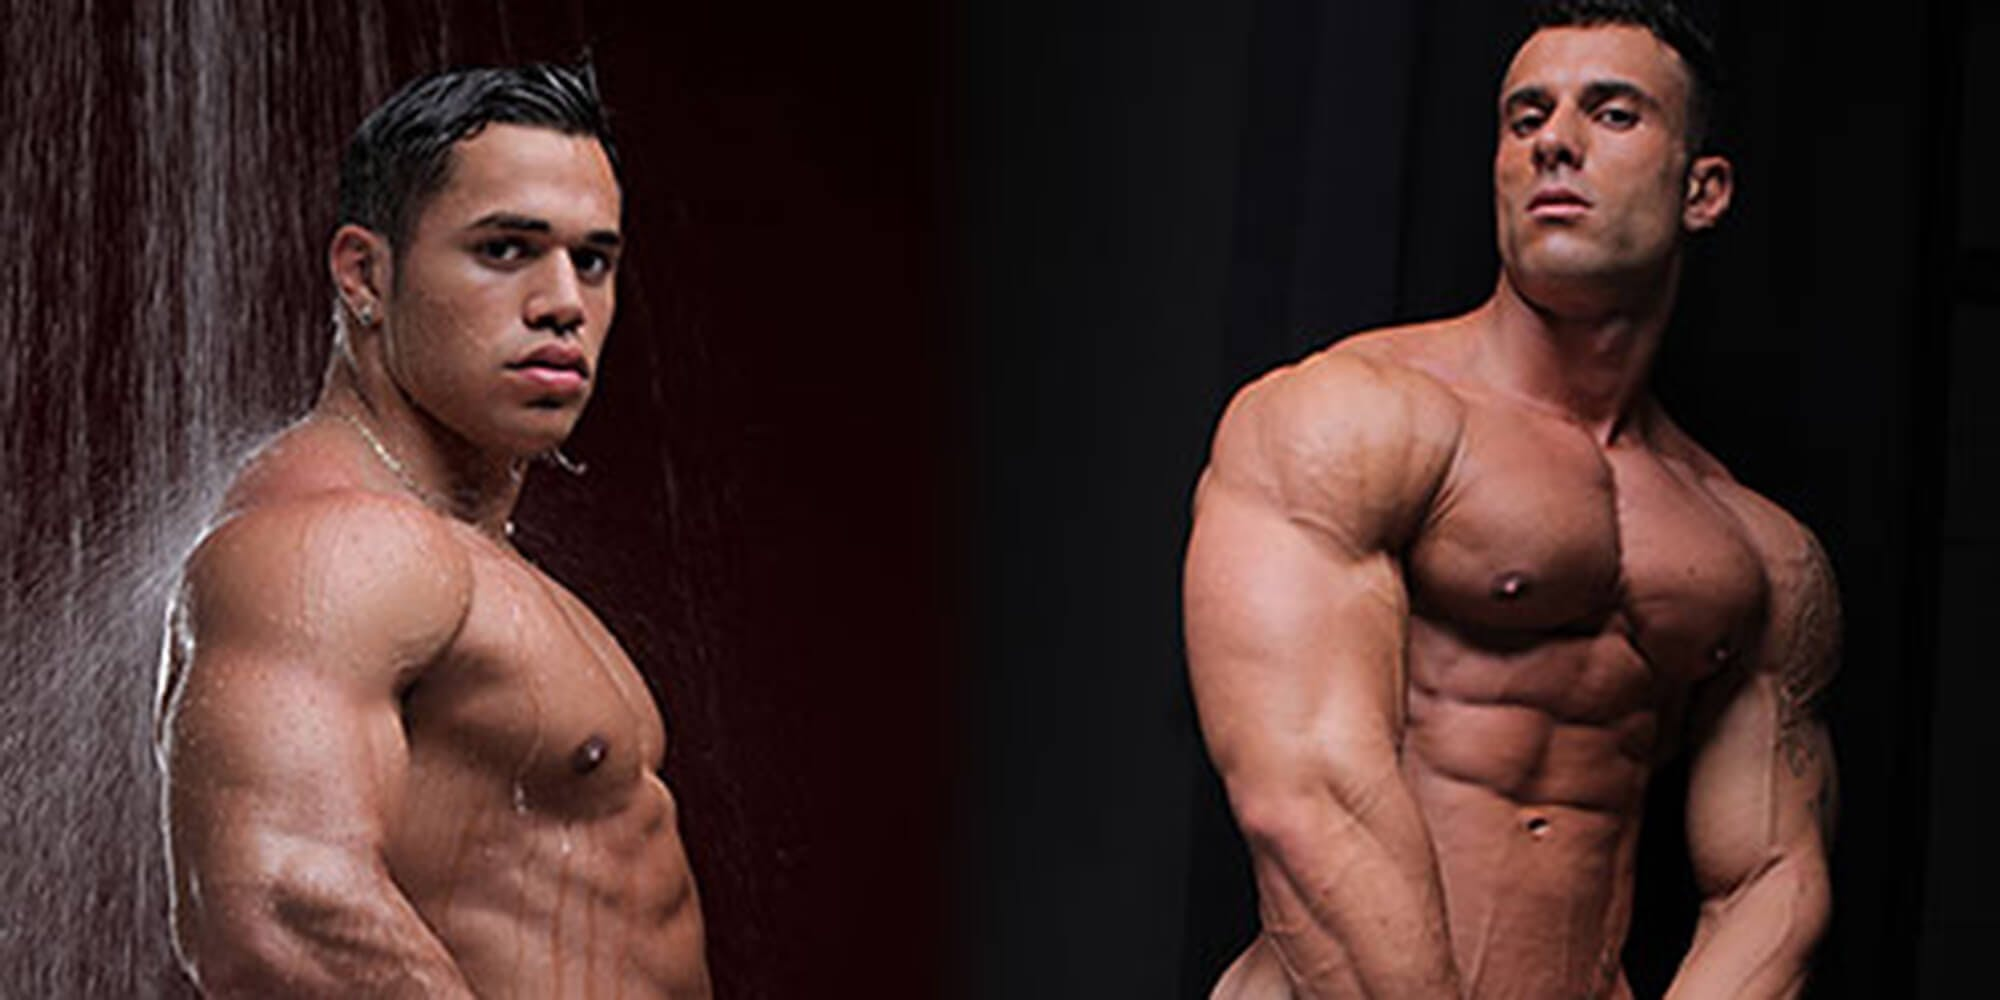 best gay cam sites - live muscle show